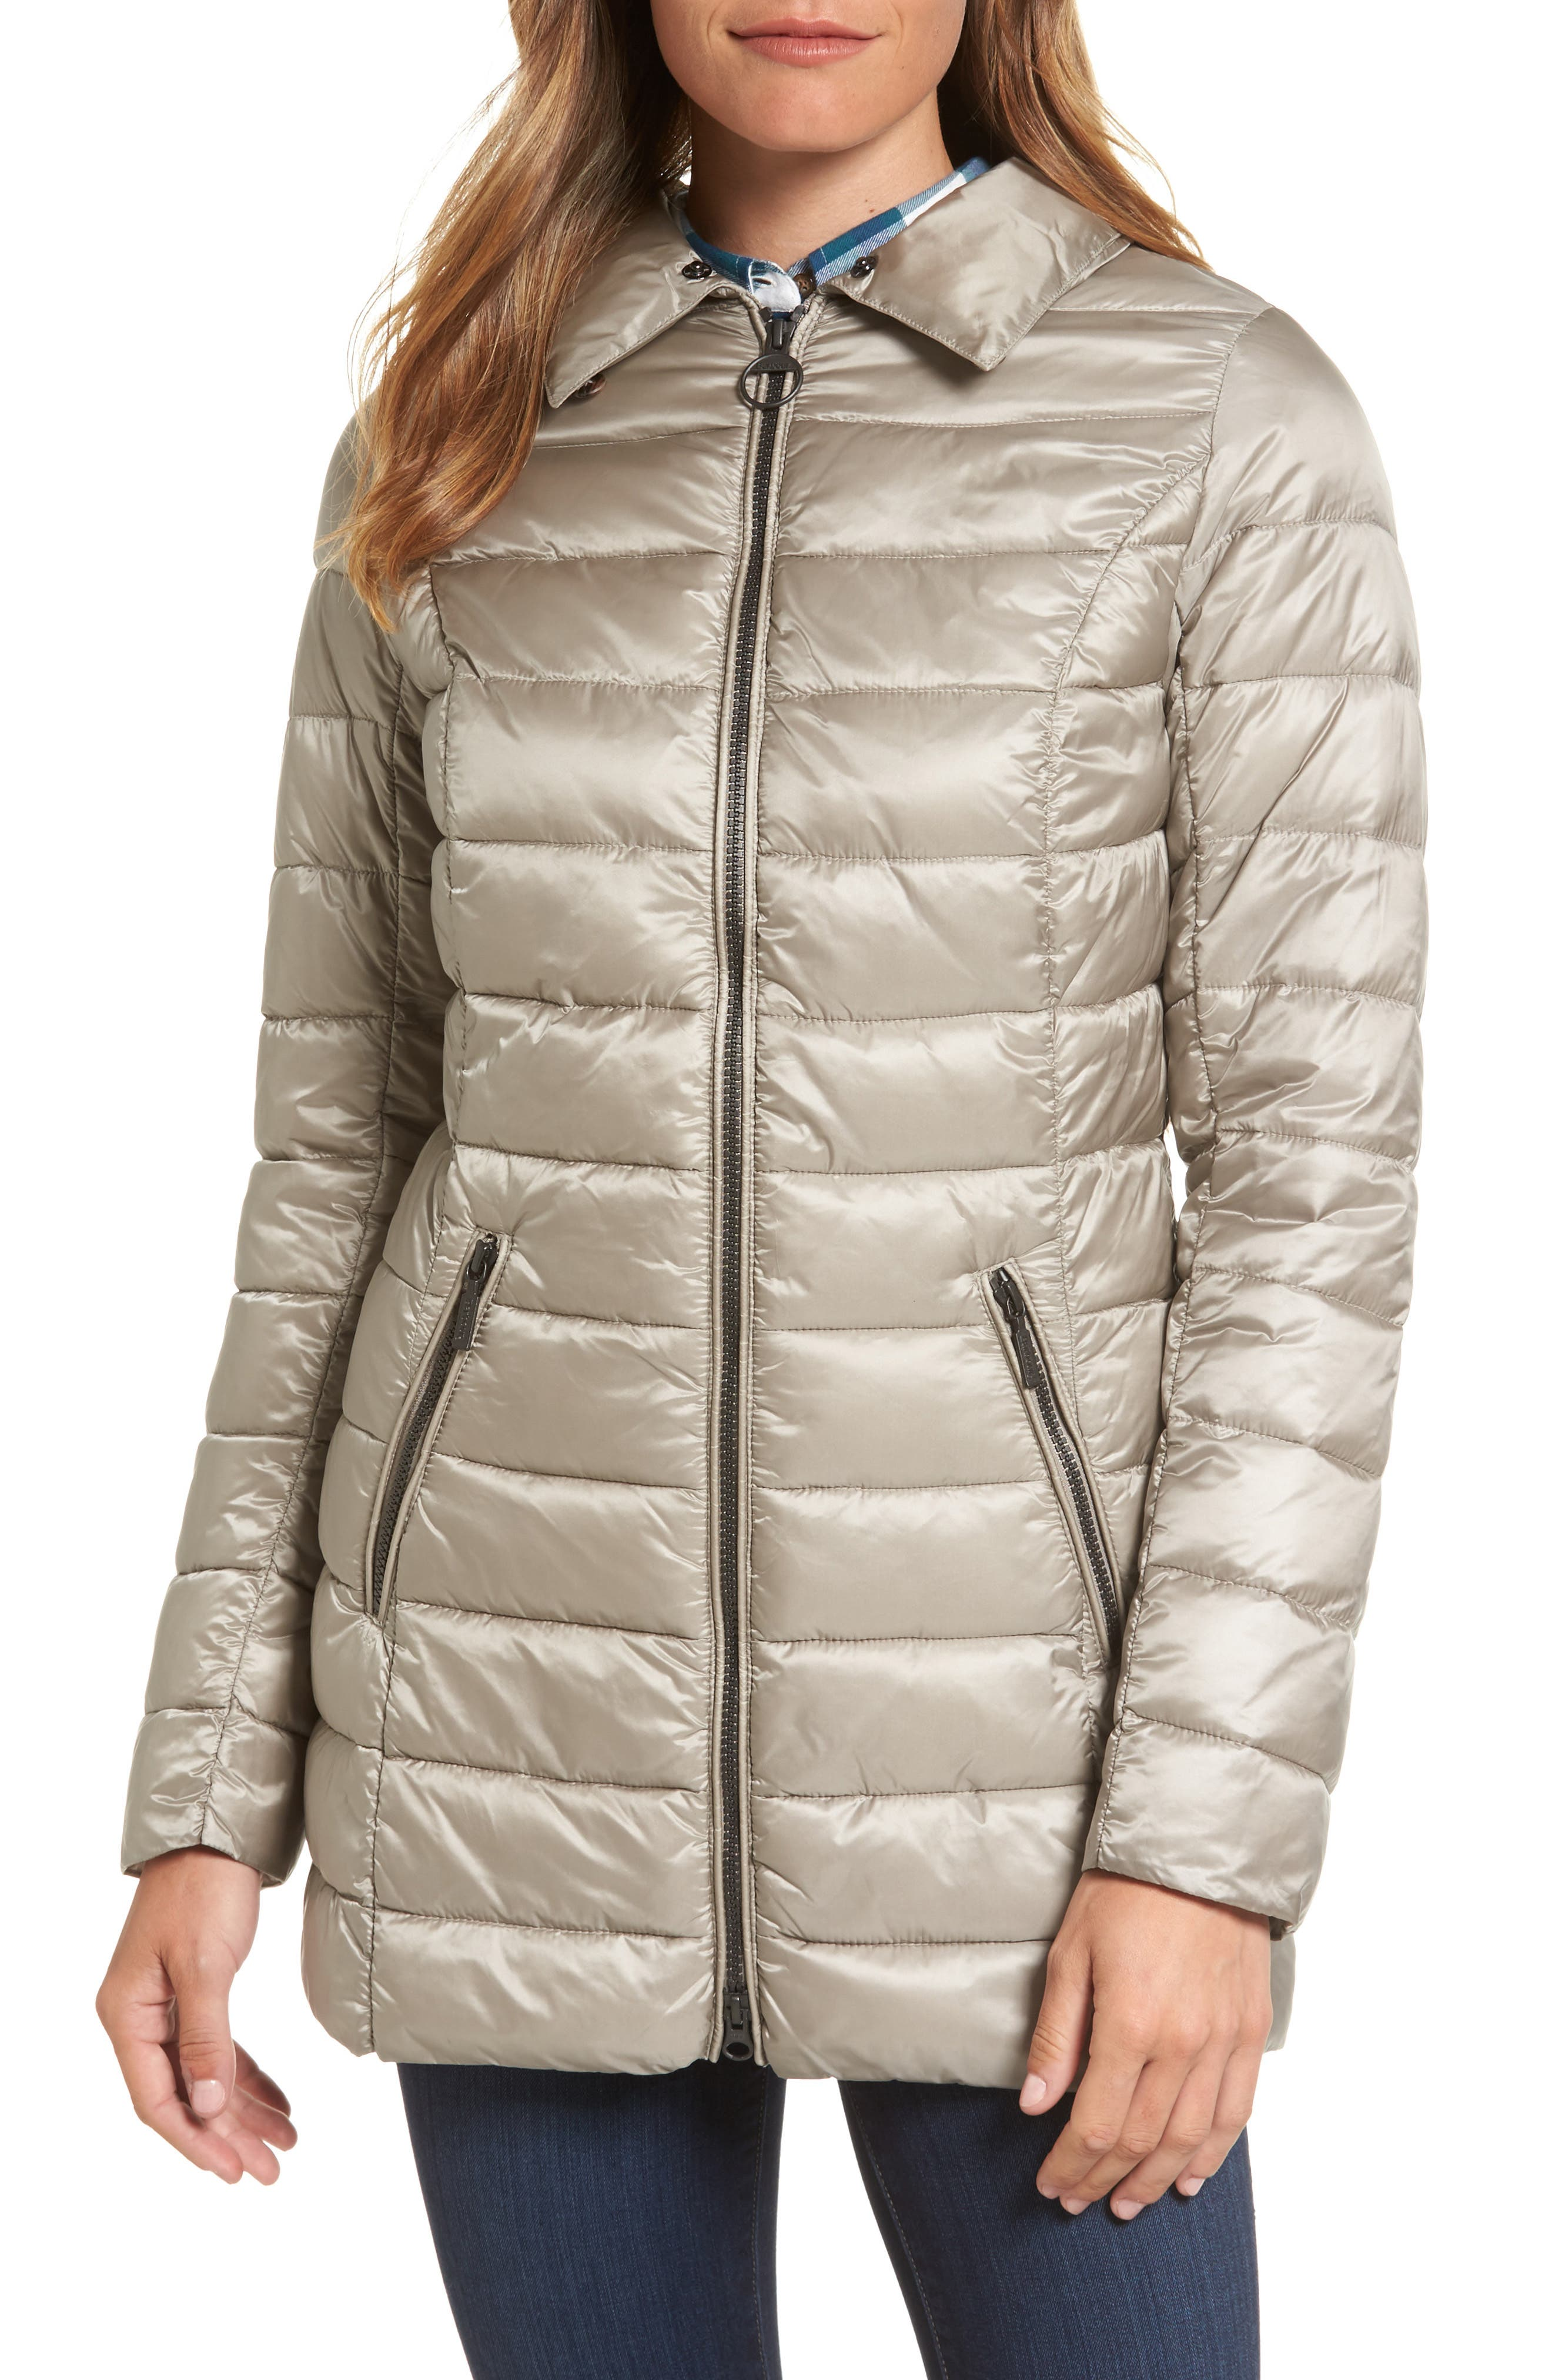 Rambleton Water Resistant Quilted Jacket with Faux Fur Collar,                             Alternate thumbnail 4, color,                             Taupe